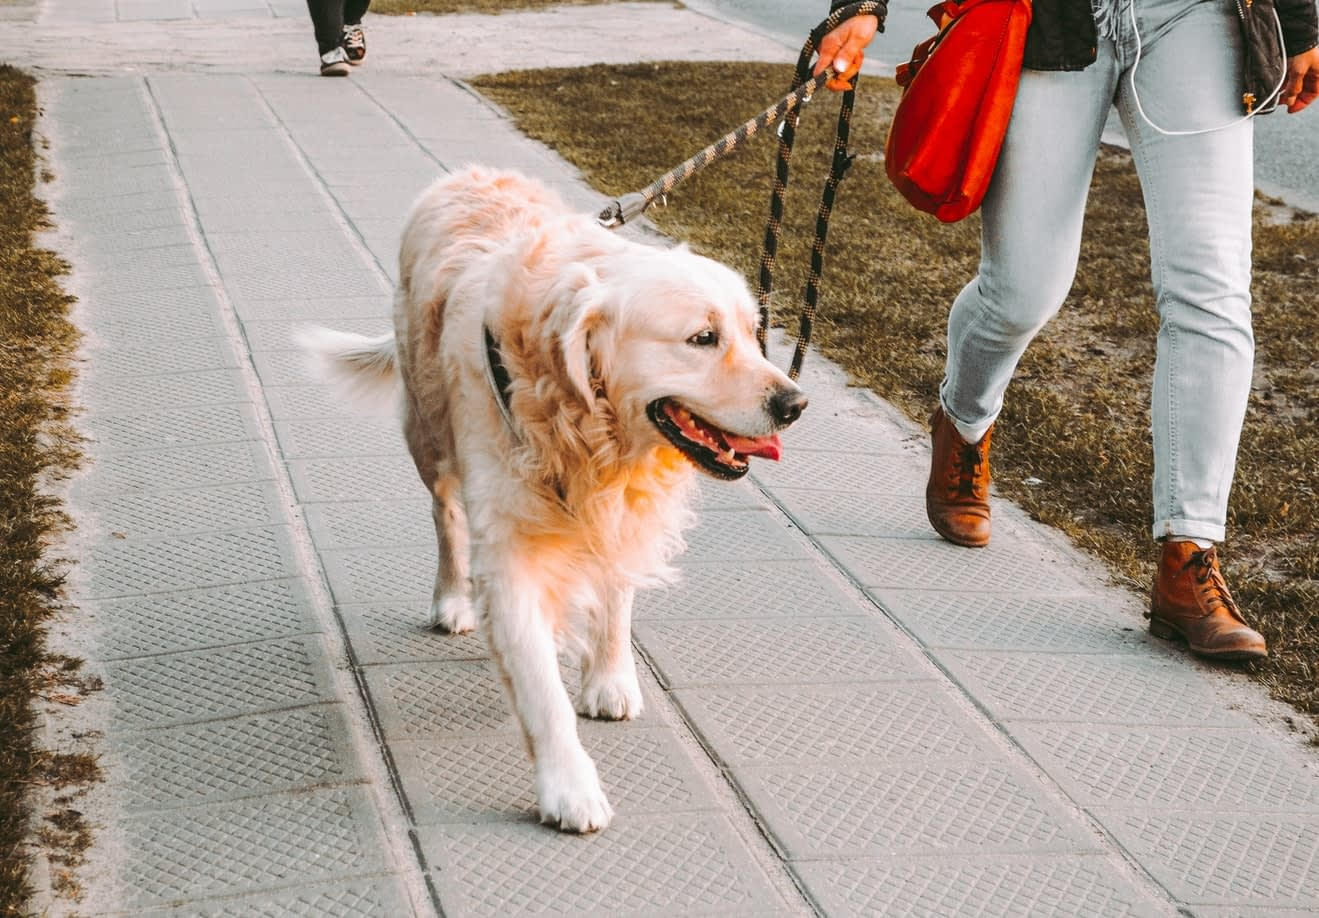 dog walking on leash with owner